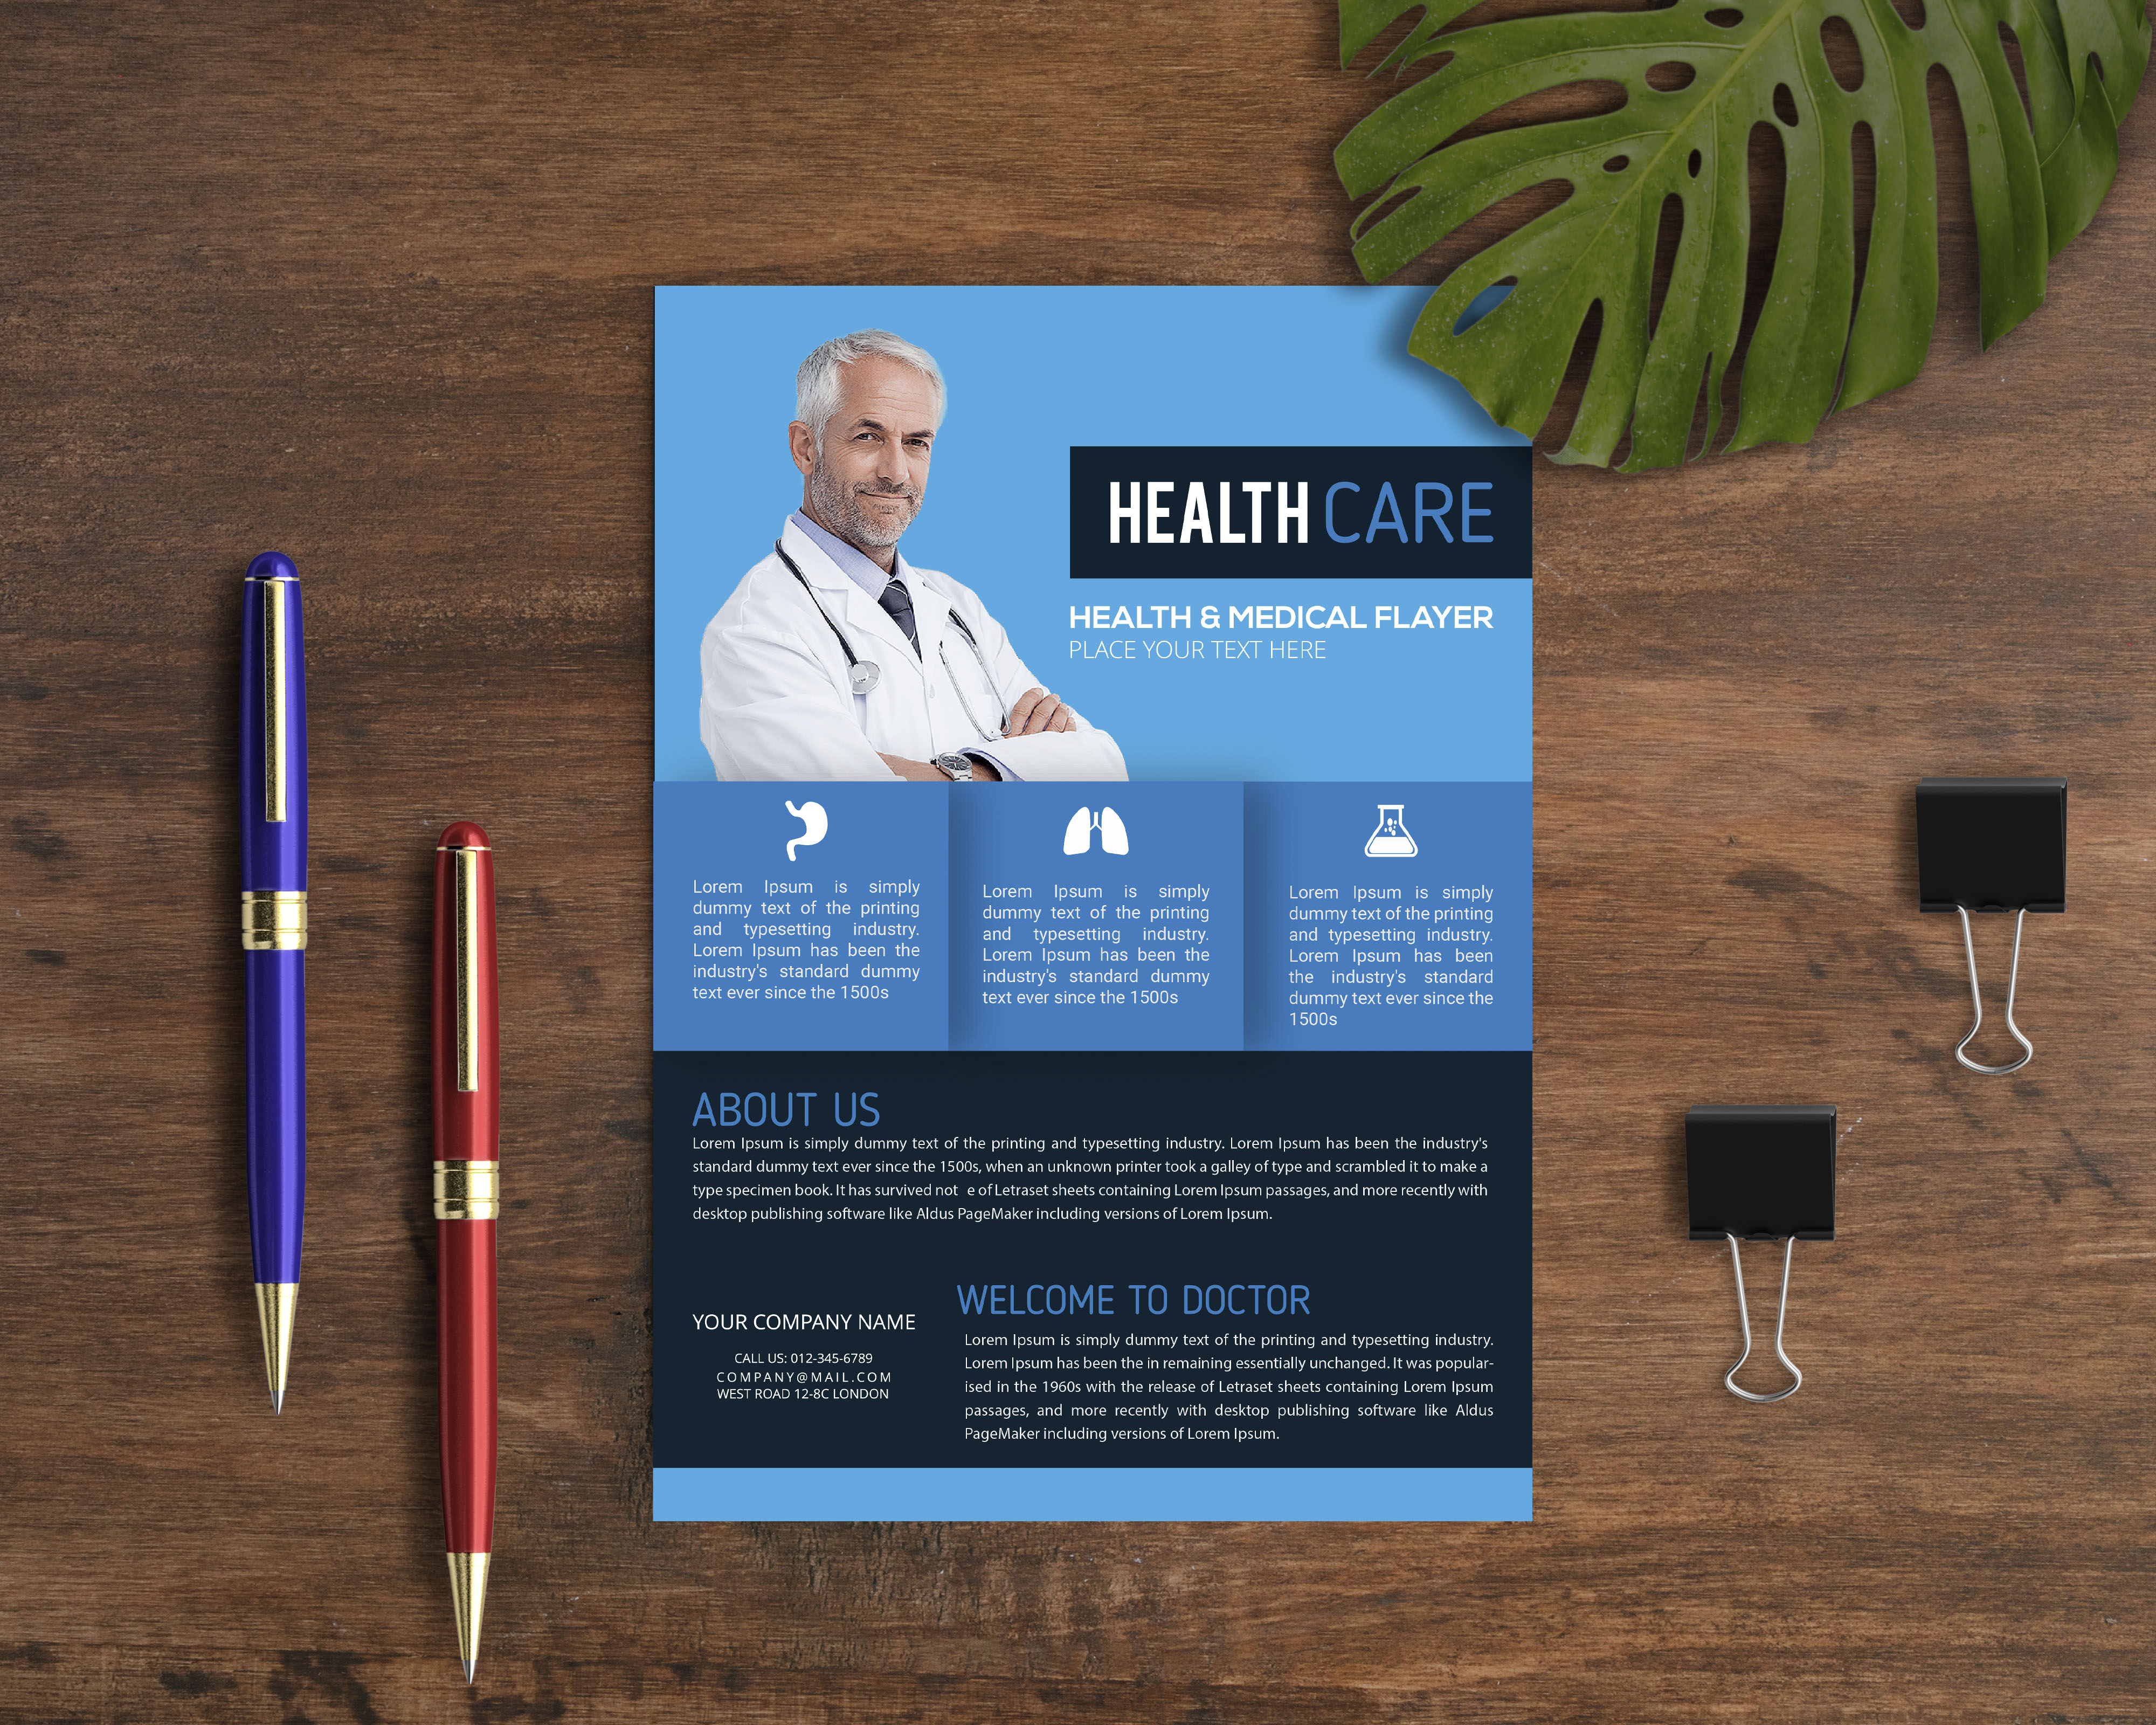 I Will Design Professional Corporate Medical Flyer And Company Profile Design